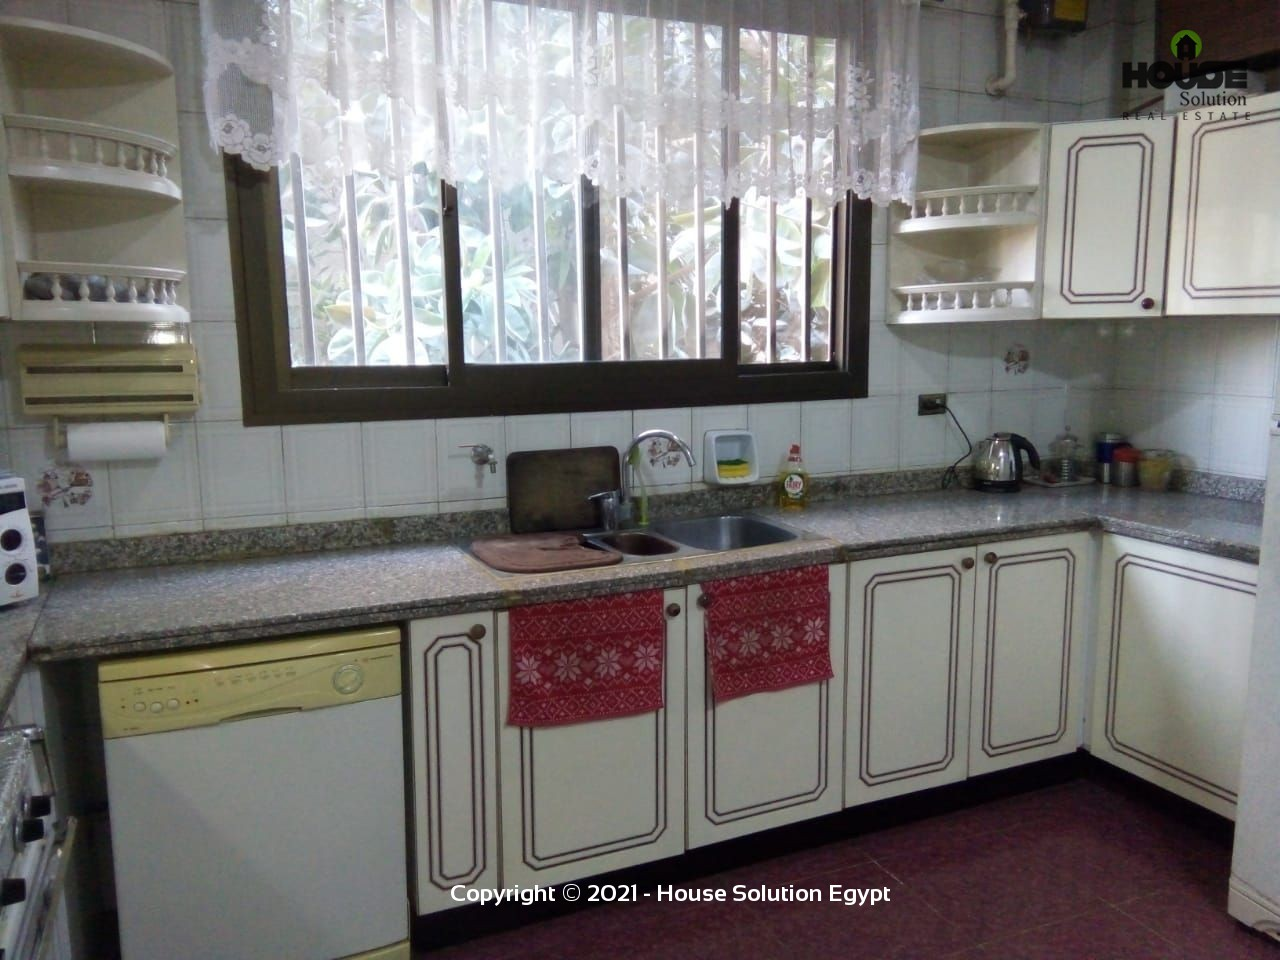 Fully Furnished Apartment For Rent In Sarayat El Maadi Cairo Egypt - 4981 Featured Image